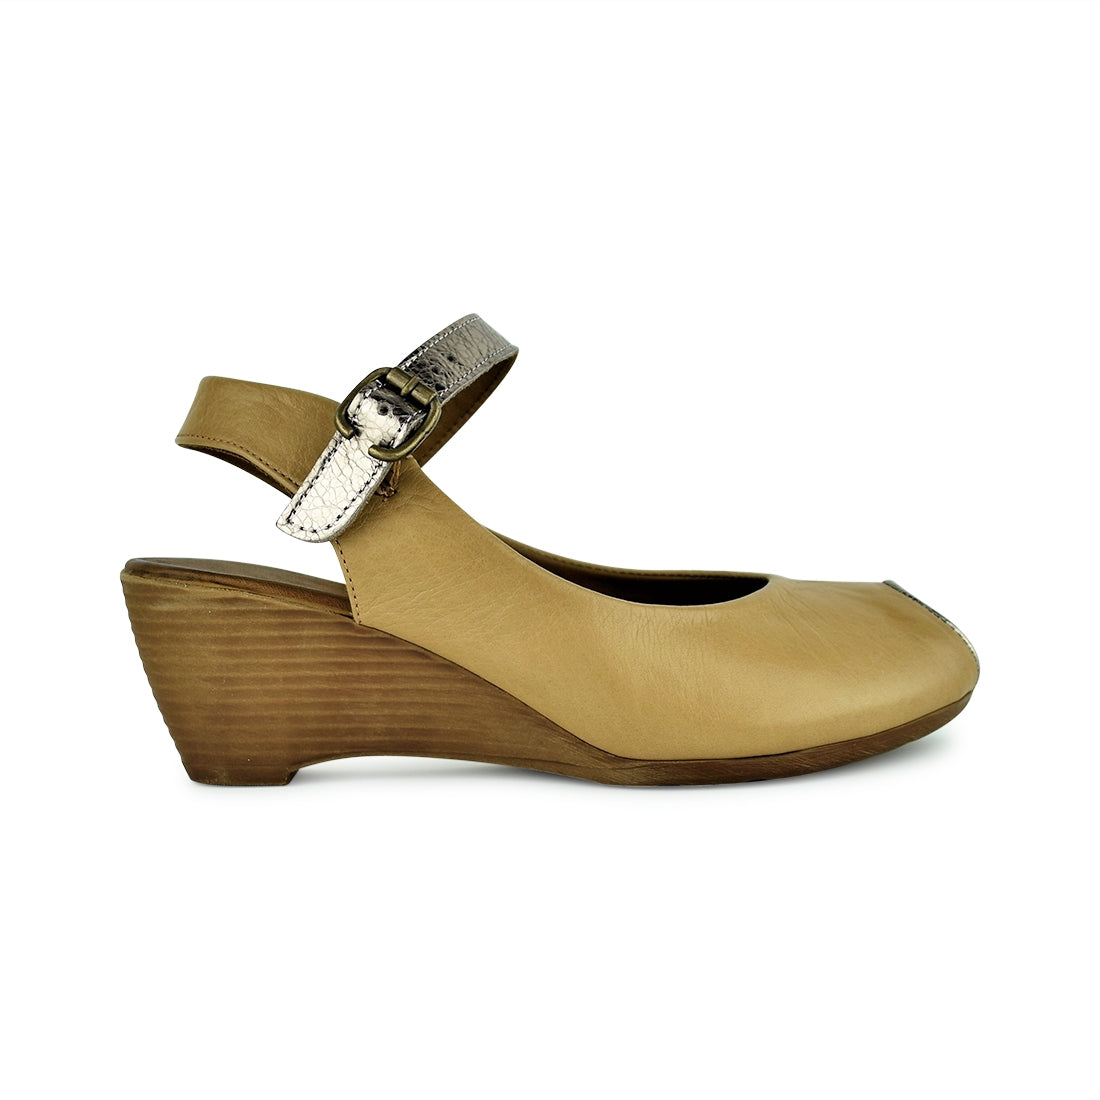 POETA - Warwick Dawson Wedge Sandal Light Tan/Pewter